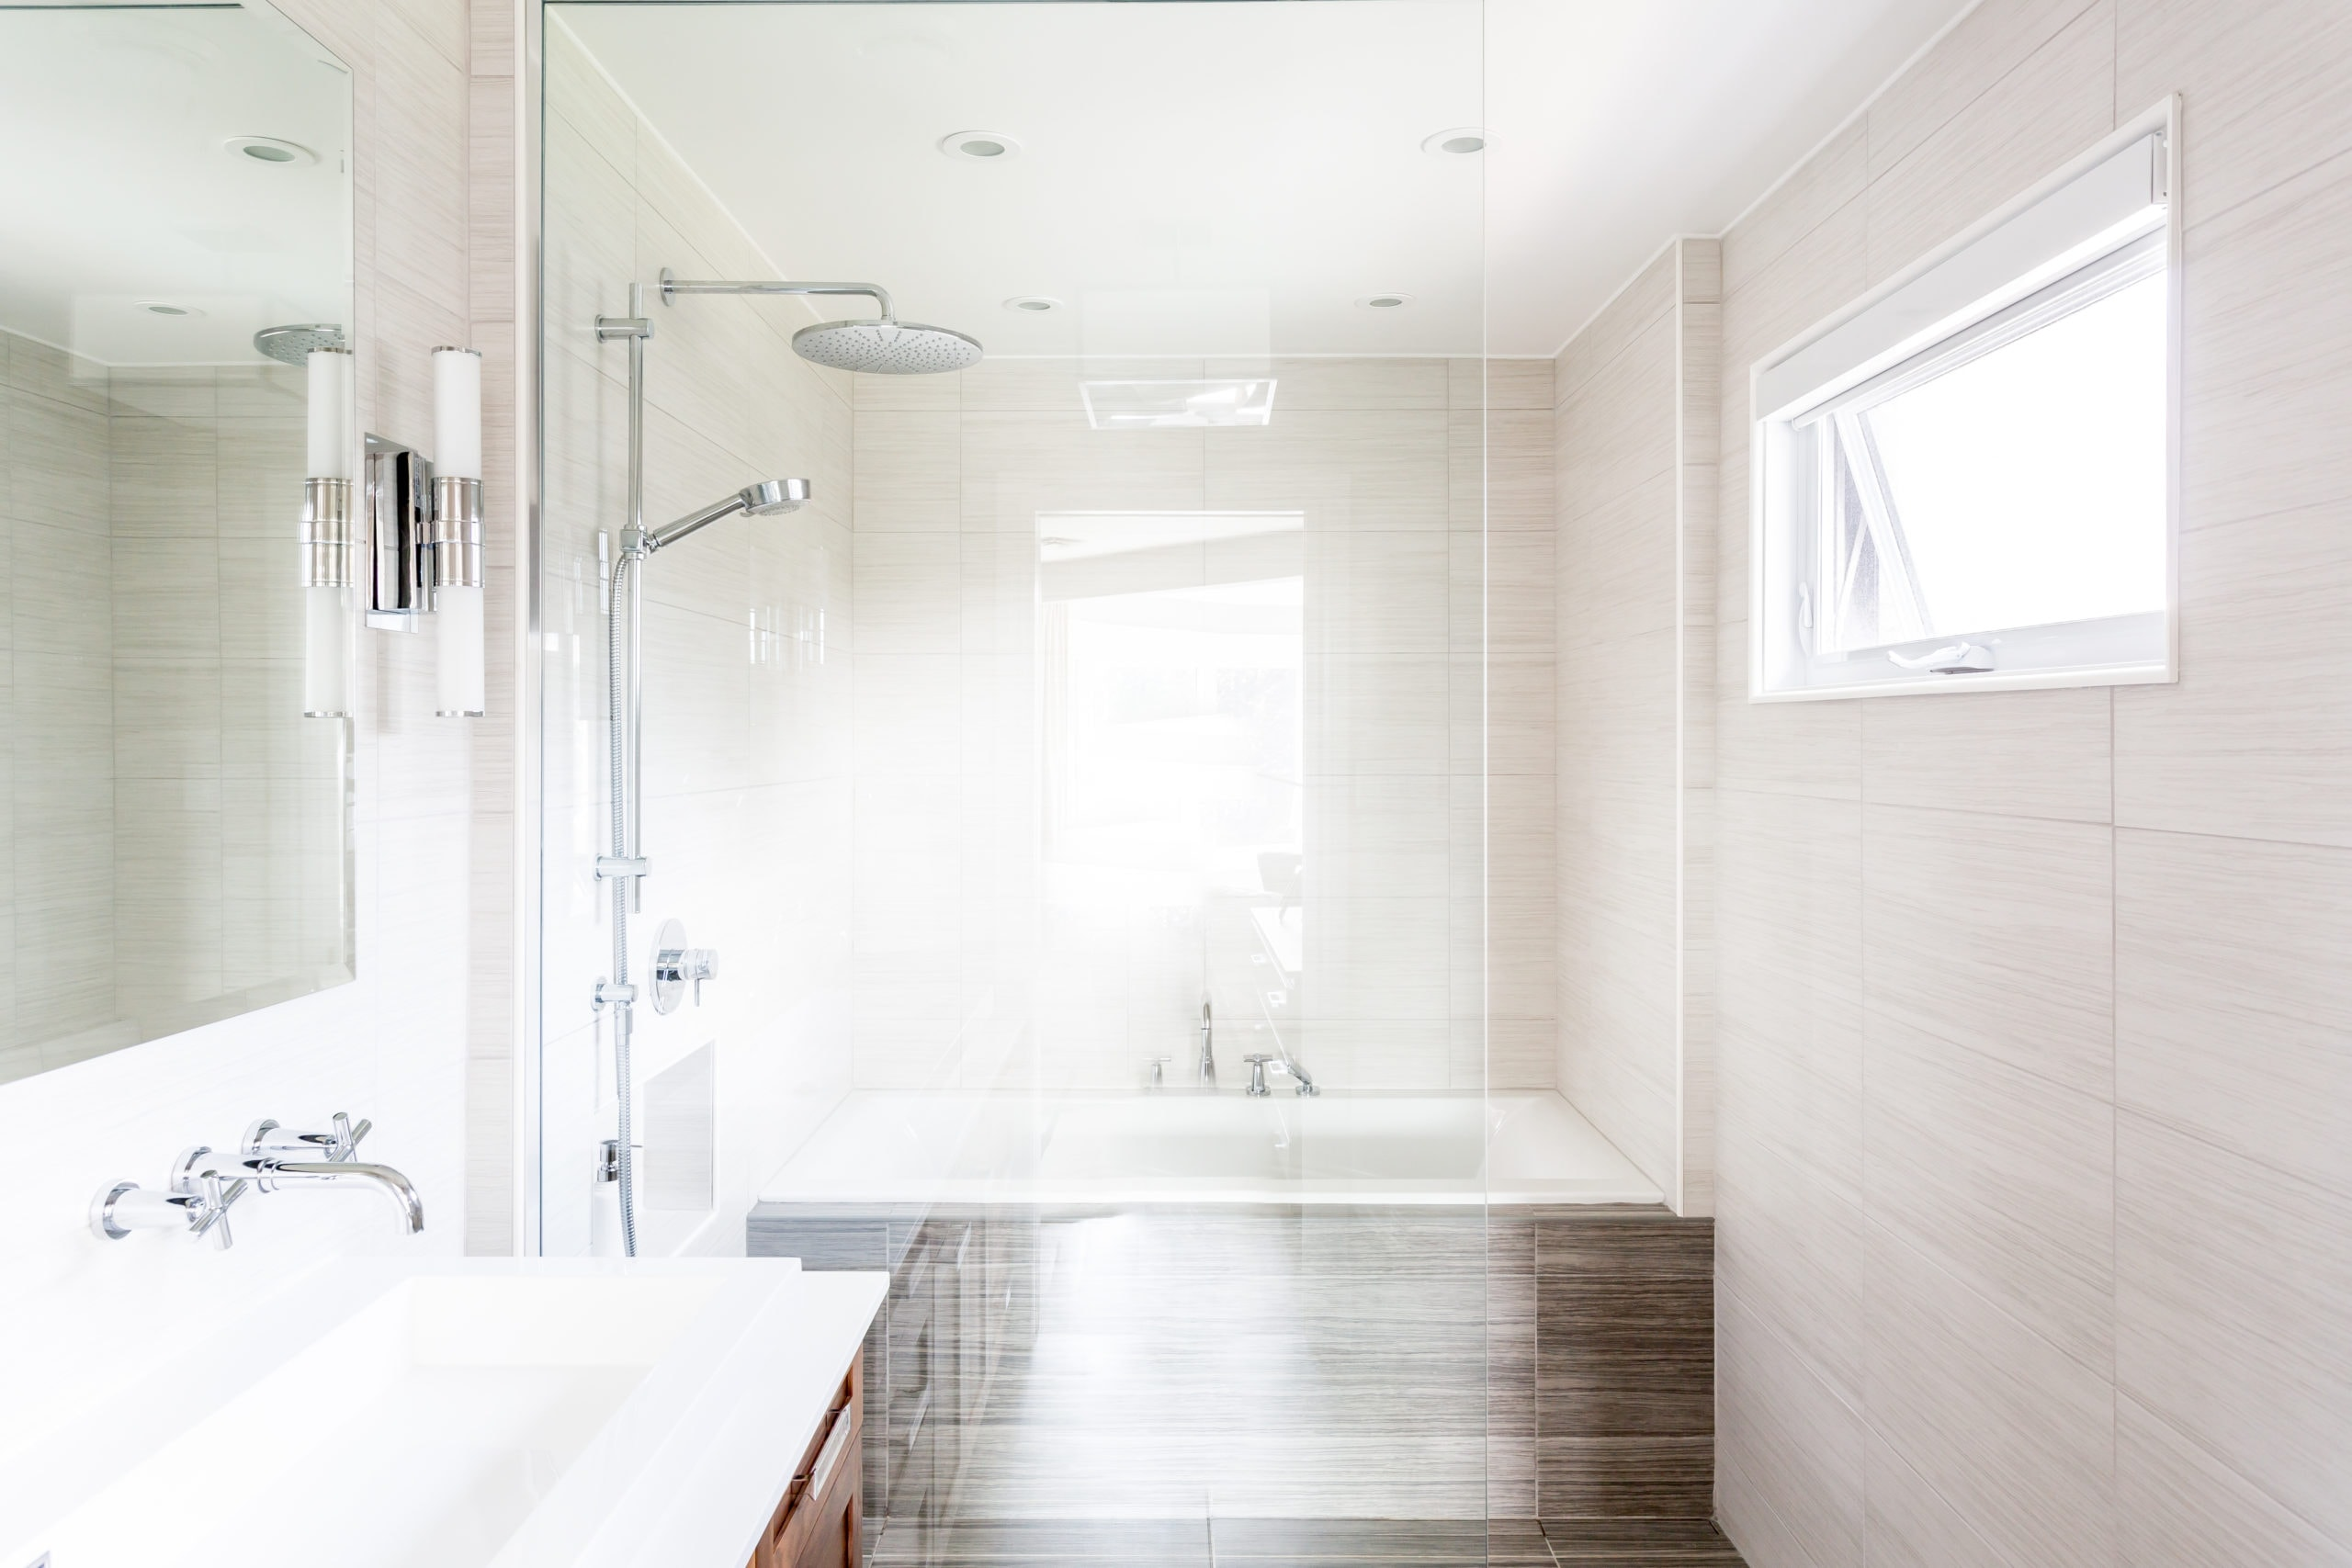 Bright clean bathroom with a focus on the separate shower and bathtub